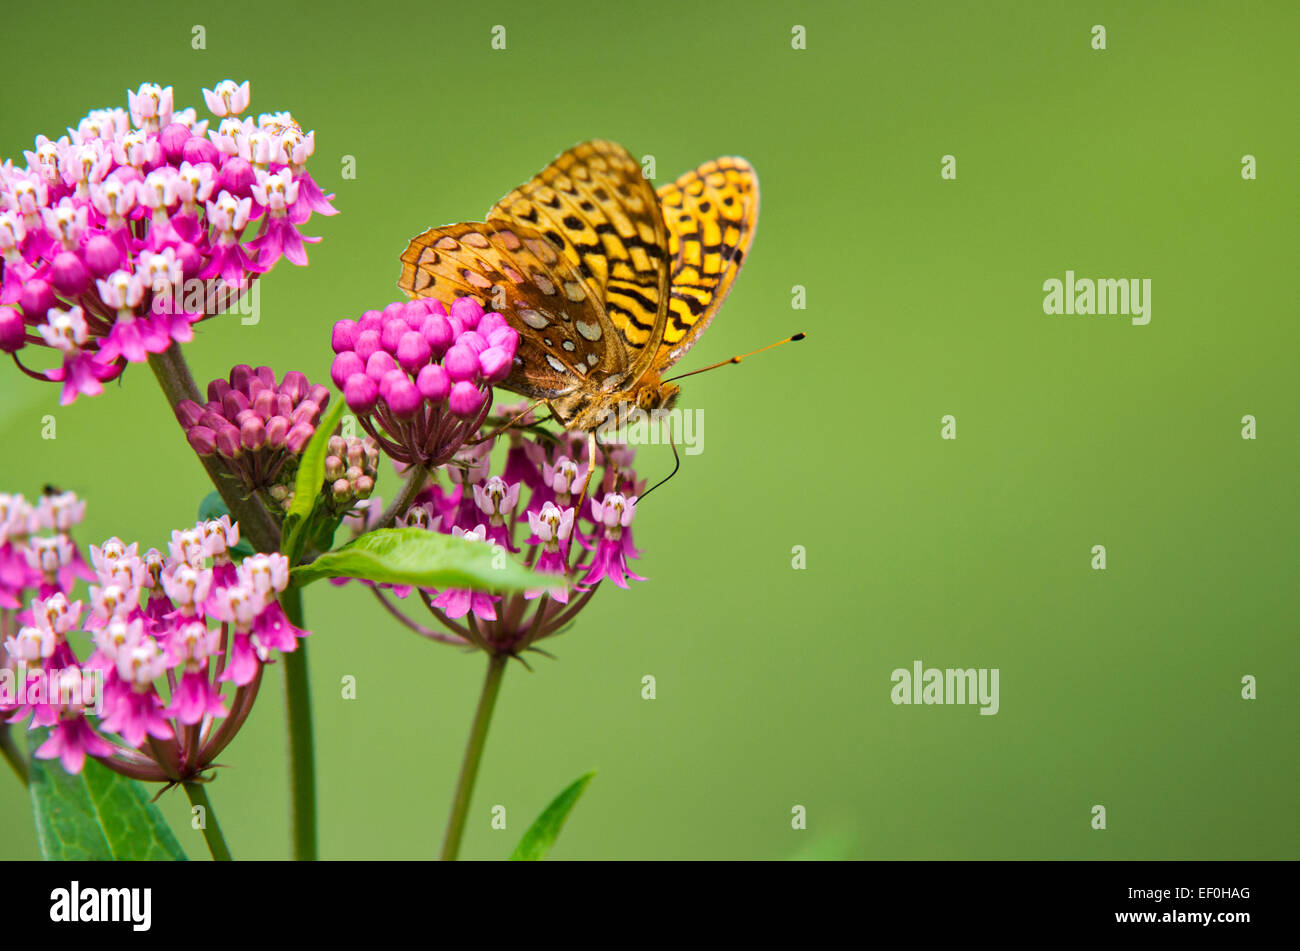 Great spangled fritillary butterfly feeding on pink milkweed flowers in garden. - Stock Image